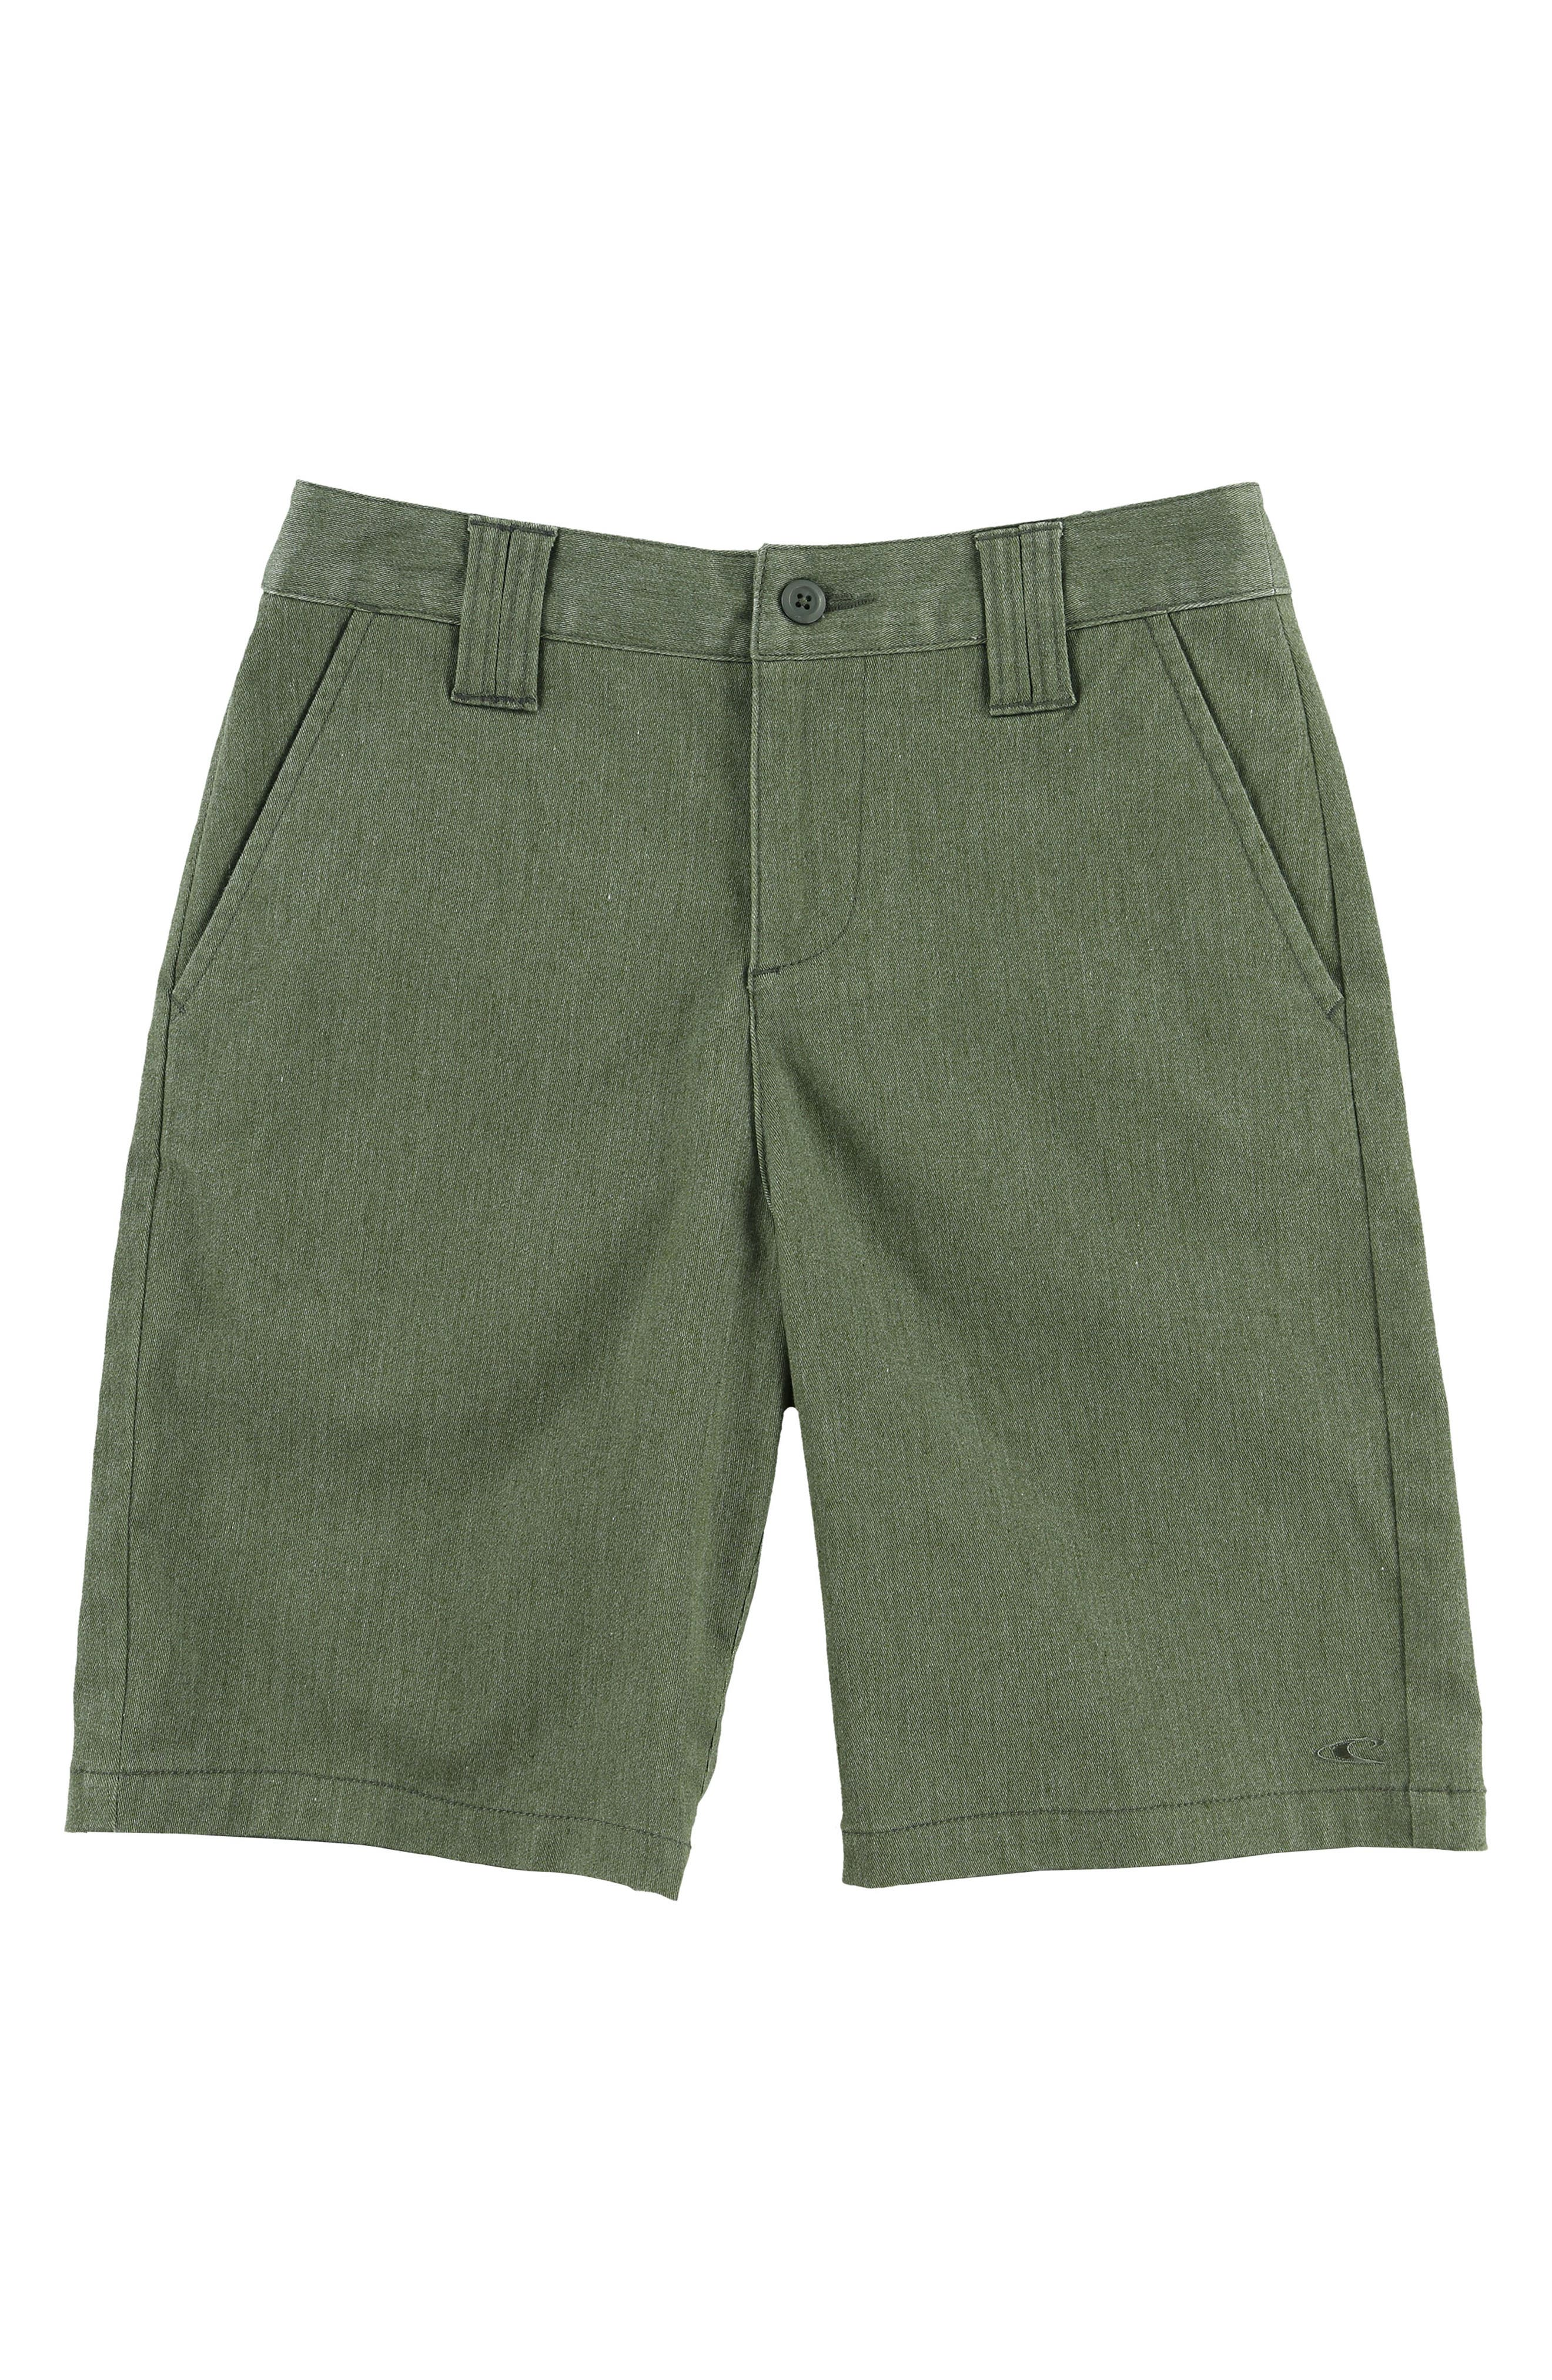 Contact Stretch Shorts,                         Main,                         color, Army Heather